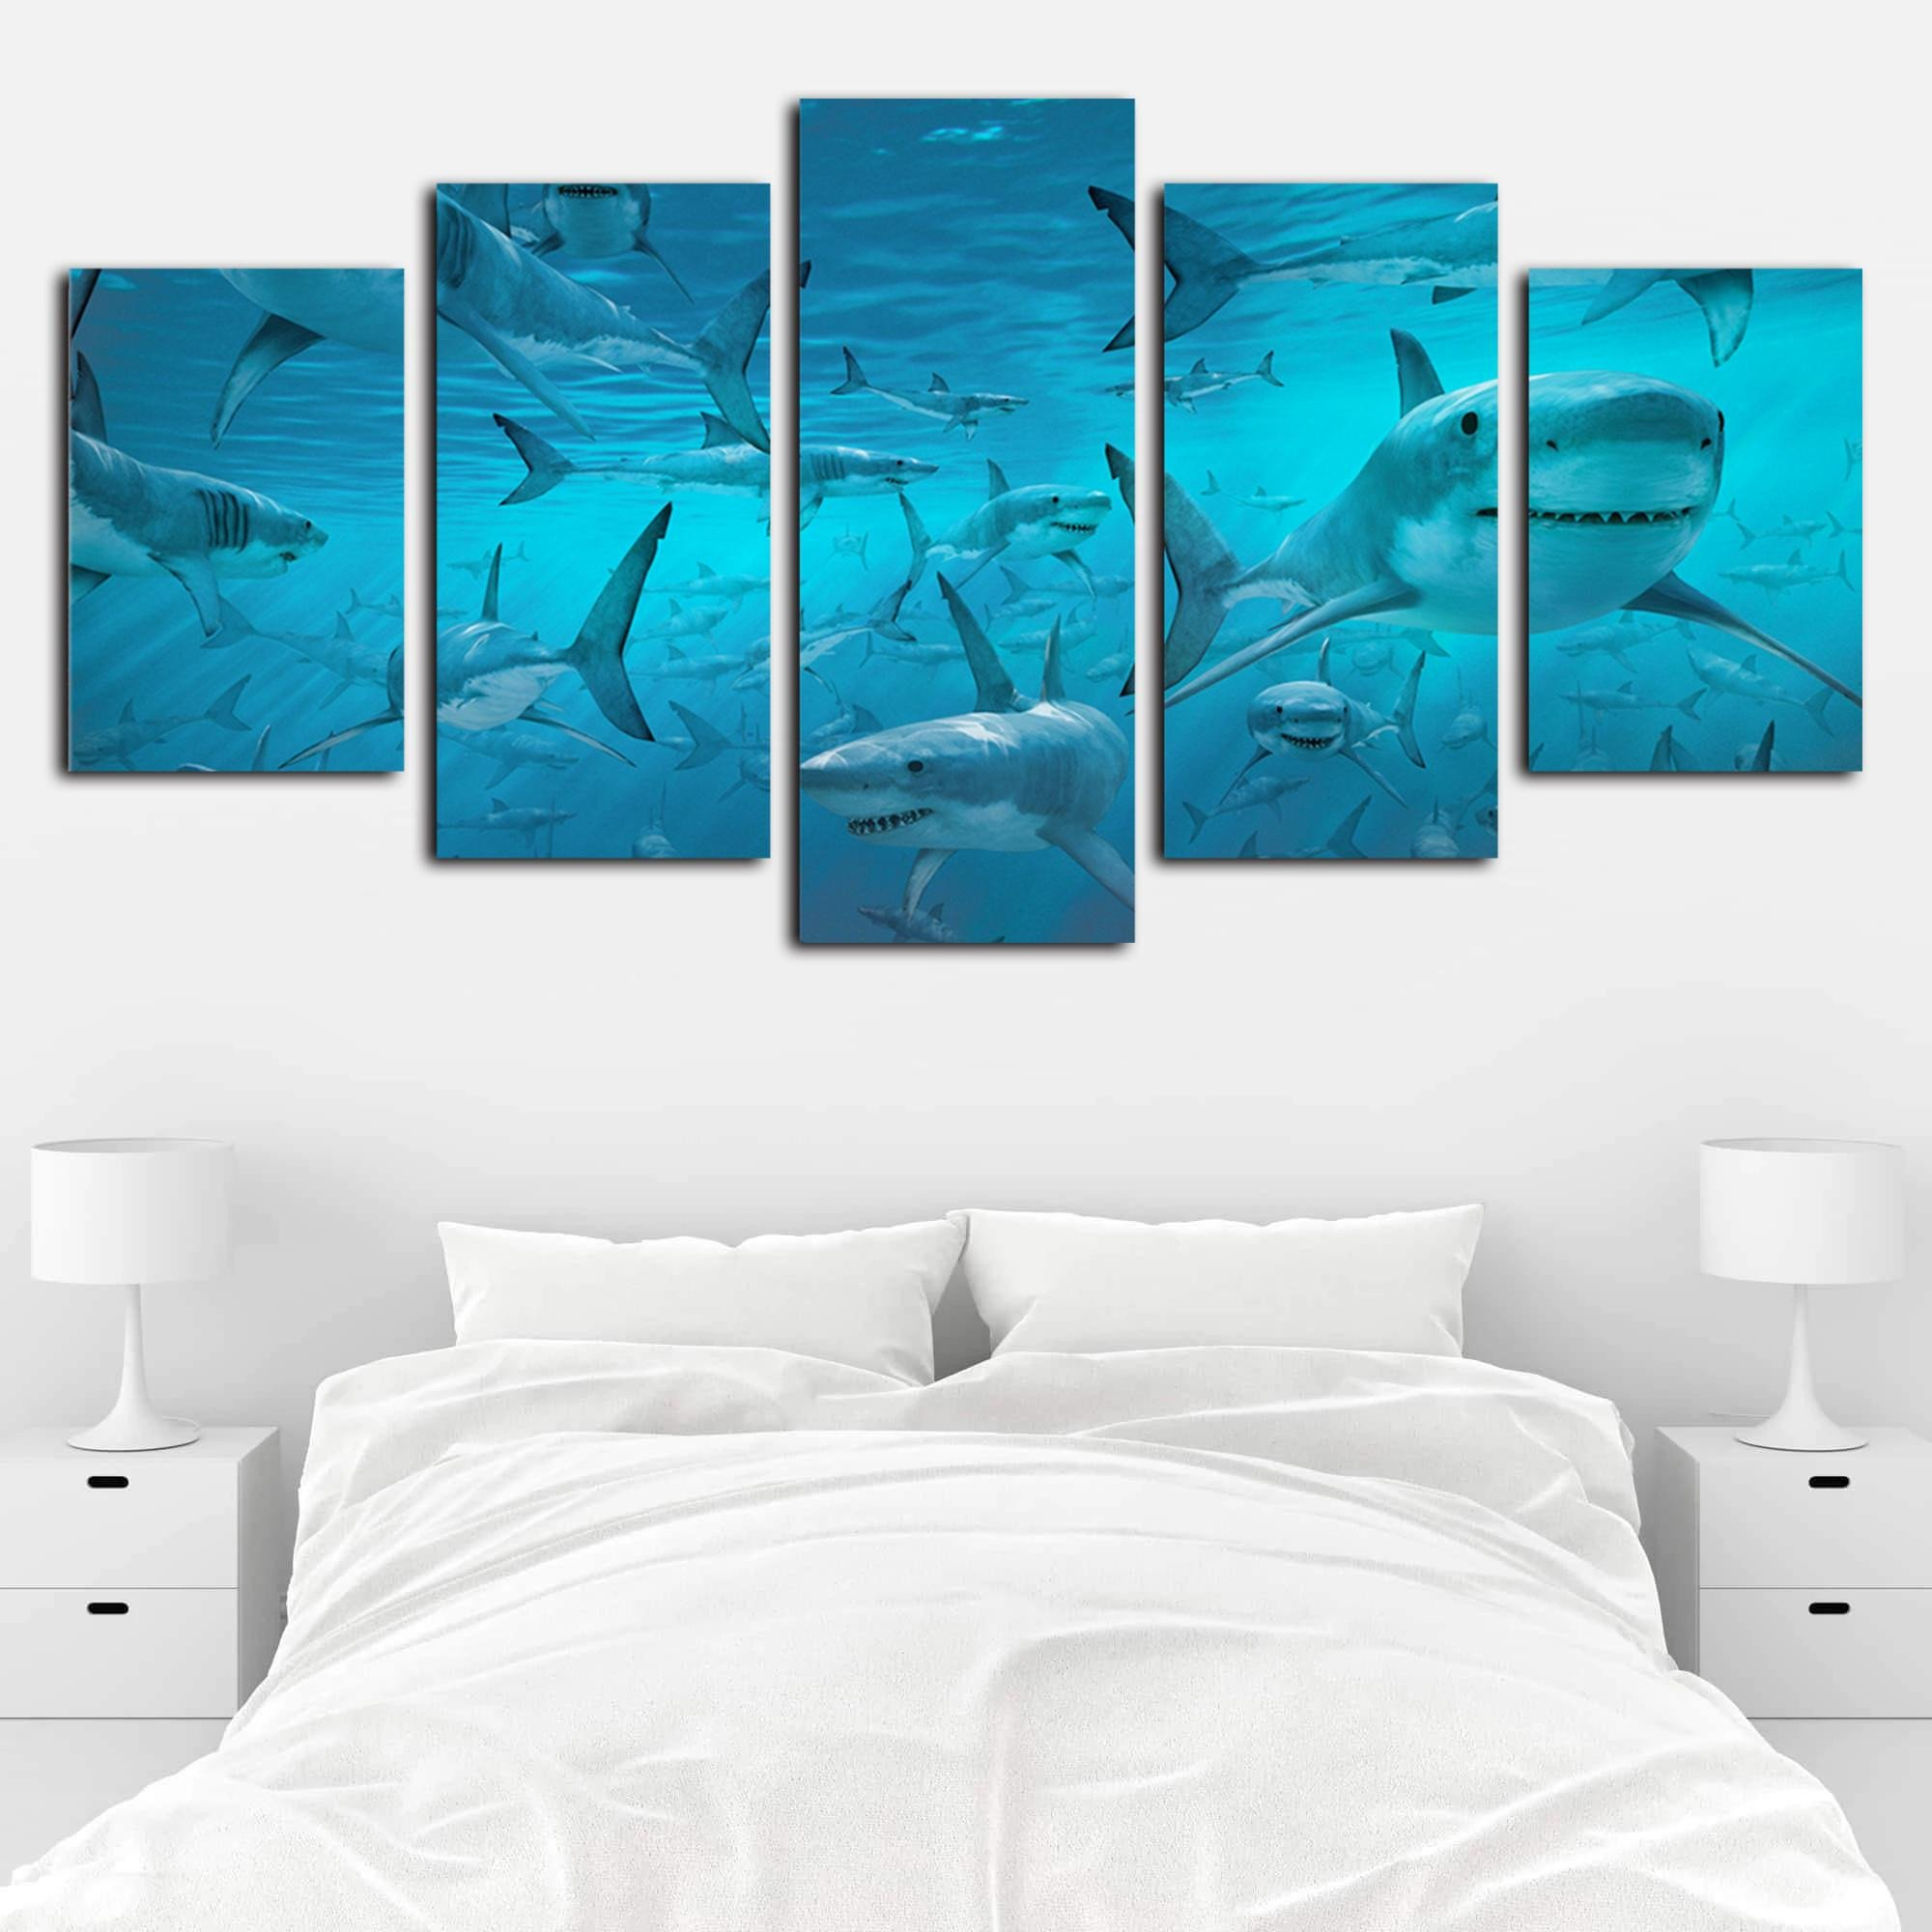 Artwork for Bedroom Walls Inspirational 2019 Modern Giclee Canvas Print Artwork 5 Panels Blue Deep Sea Shark Swarm Picture Printed Canvas Wall Art for Home Fice From Home Textiles